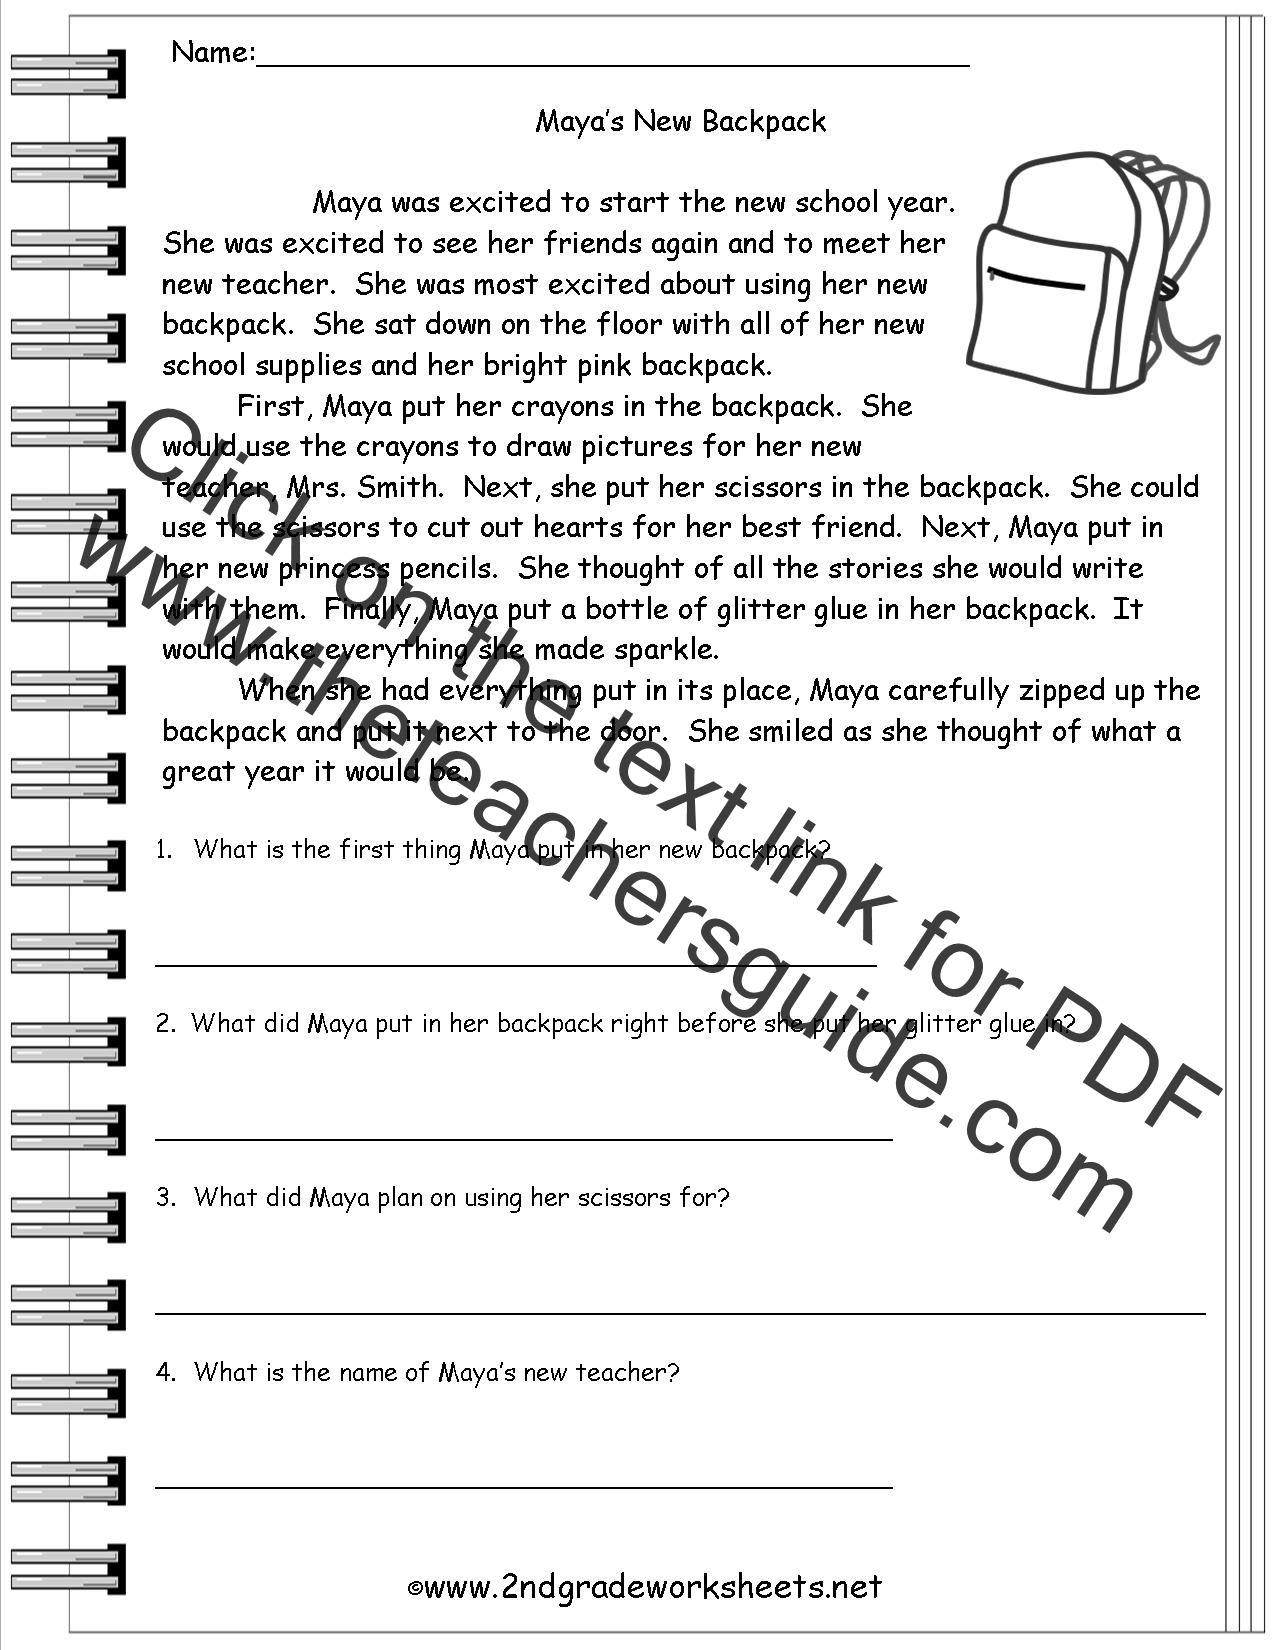 Worksheets 2 Grade Reading Worksheets reading worksheeets literature worksheets